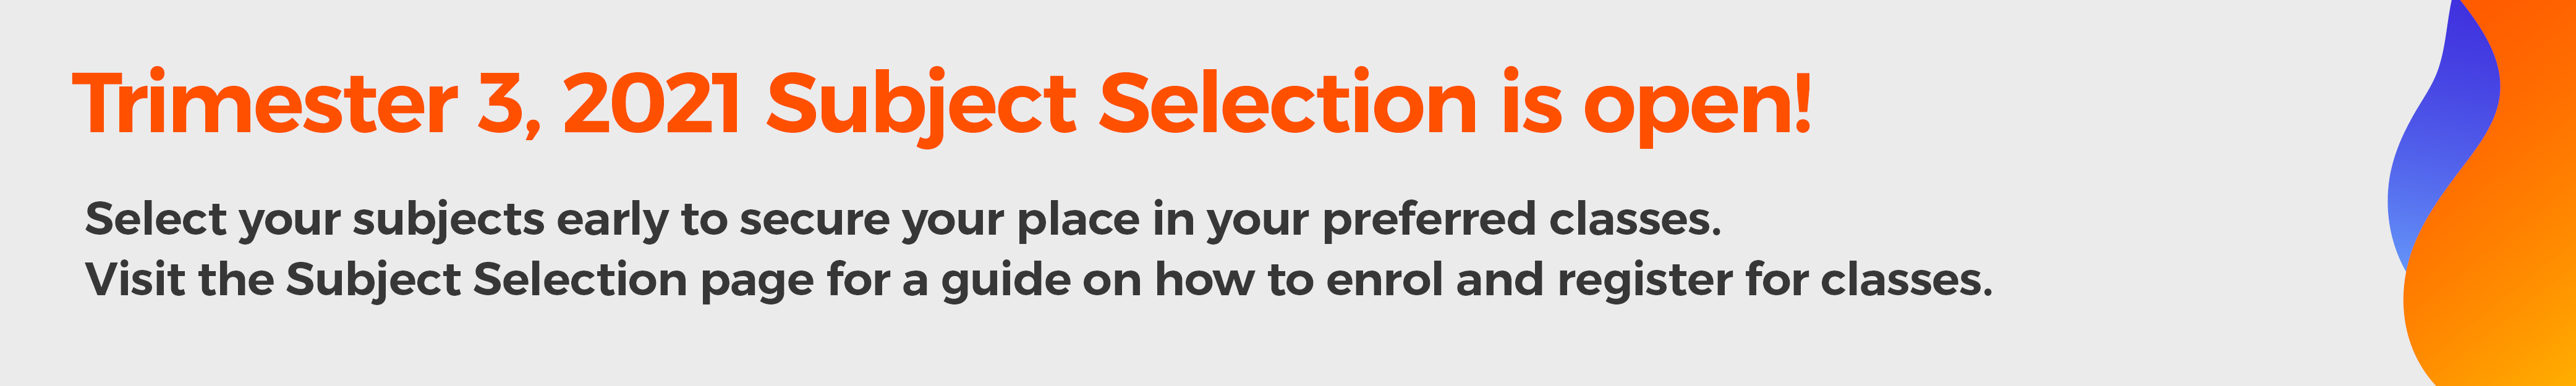 Subject Selection T3 2021 Now Open